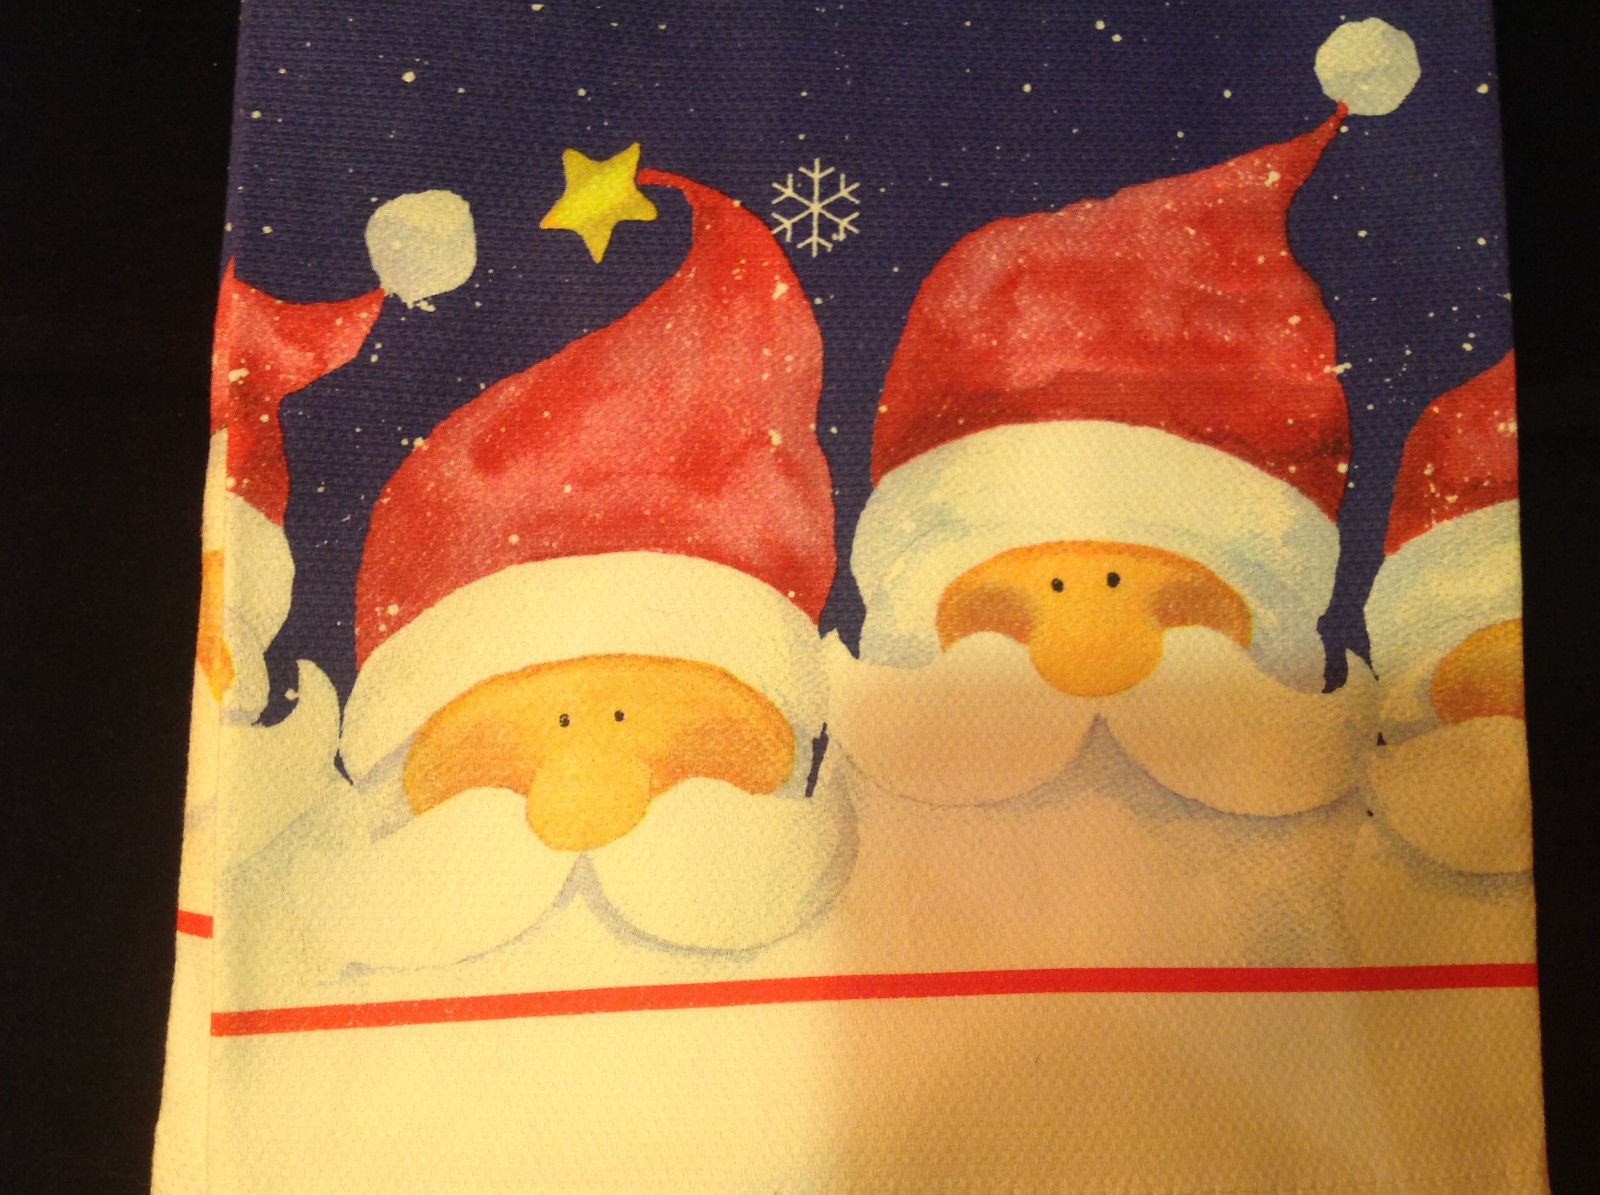 Four Santa Claus Heads Snowflakes Fiddlers Elbow Christmas Dish Towel Cotton